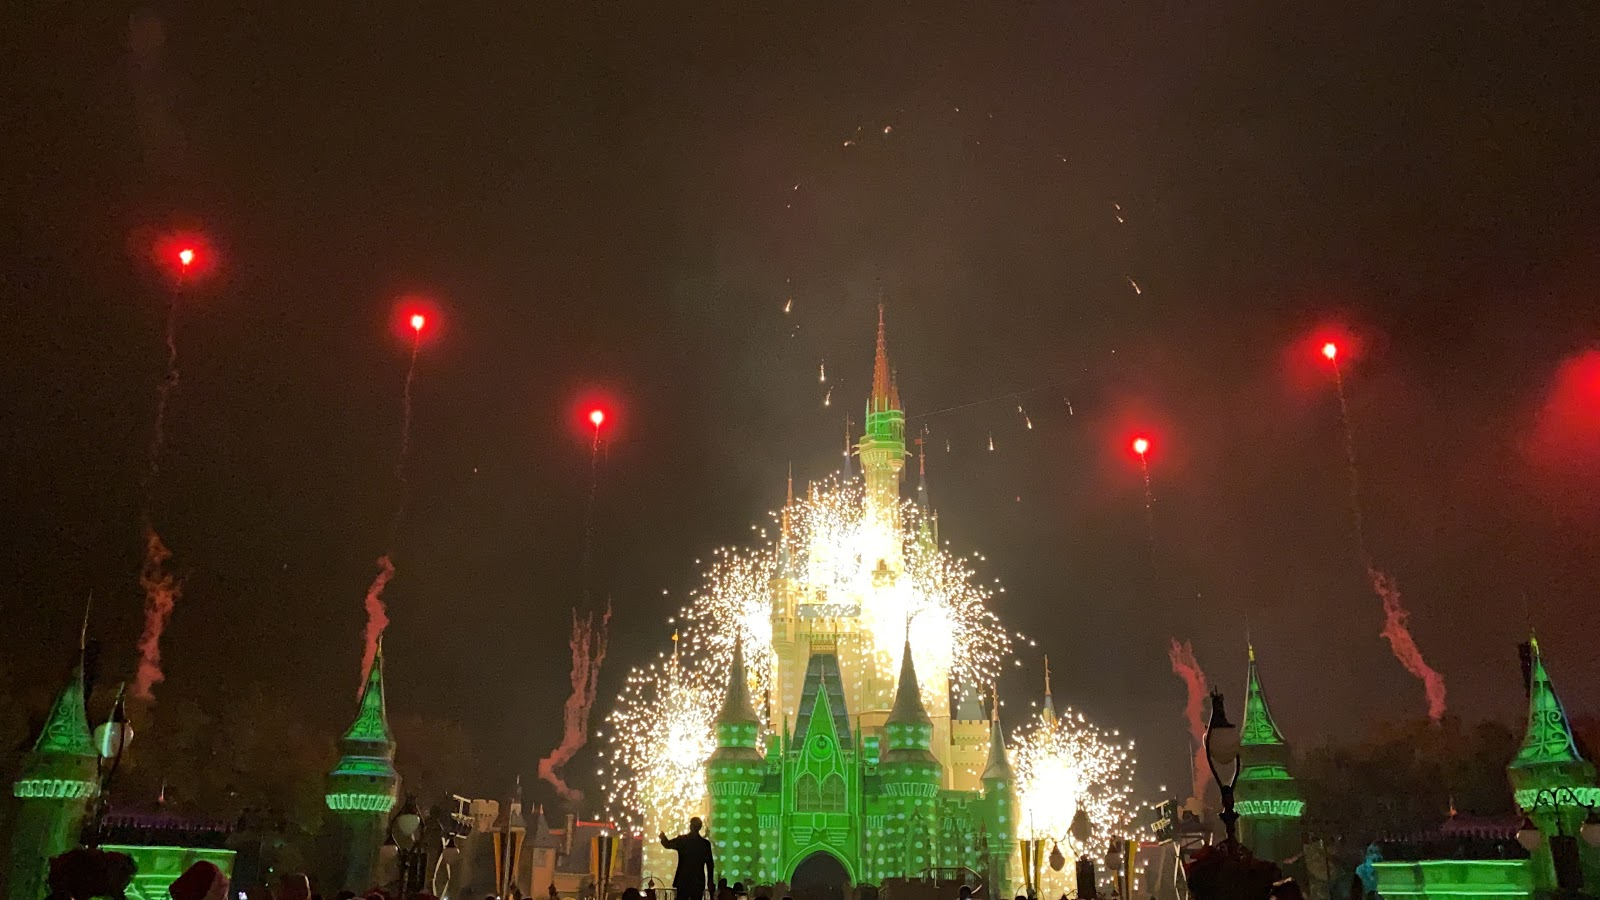 Video: Minnie's Wonderful Christmastime Fireworks at Mickey's Very Merry Christmas Party